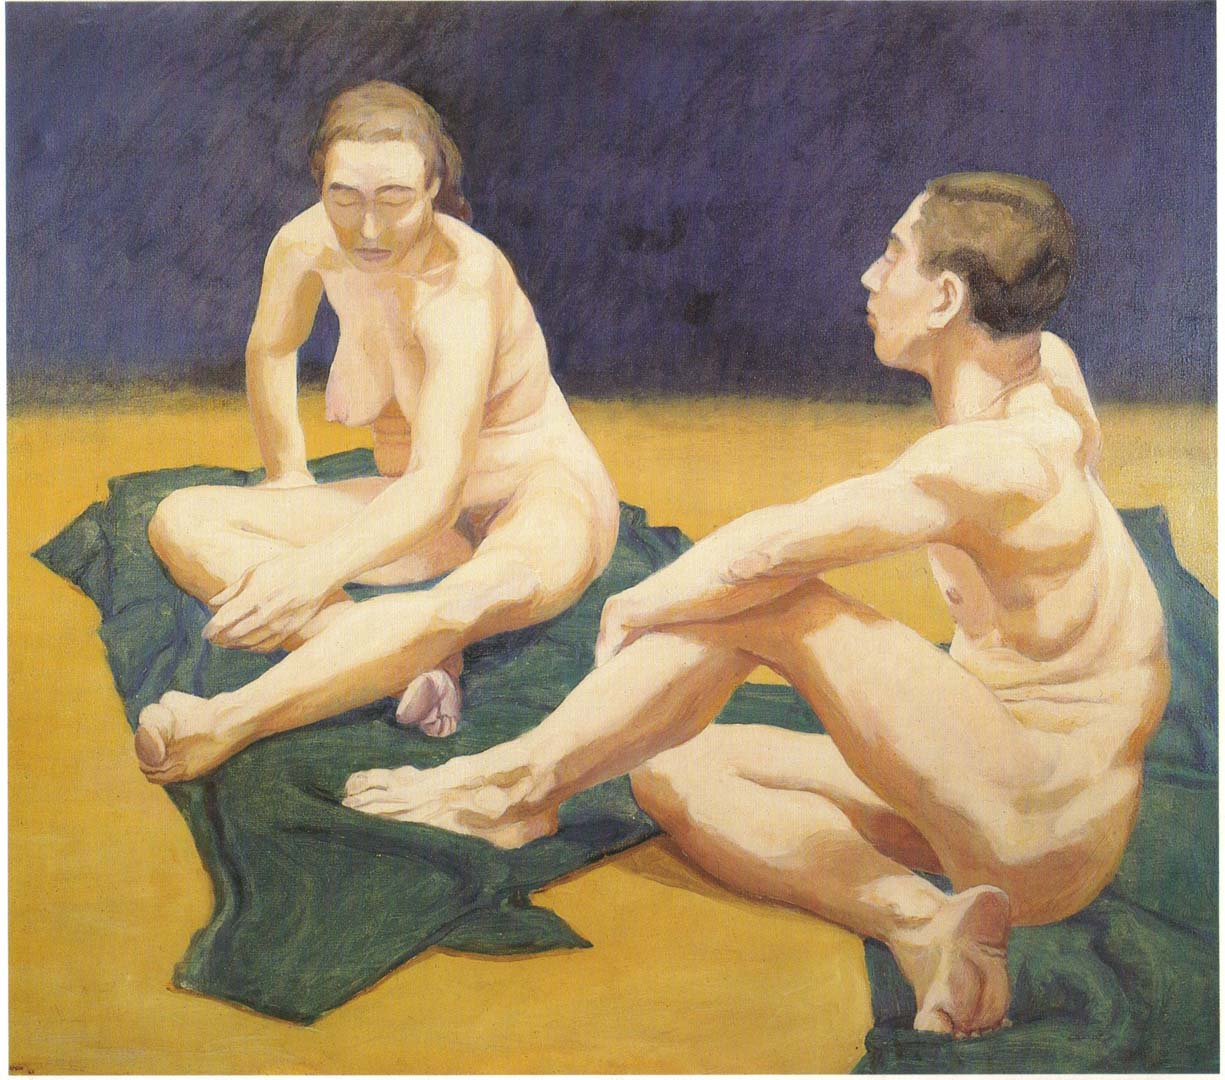 1962 Male and Female Models Sitting on the Floor Oil on Canvas 44 x 55